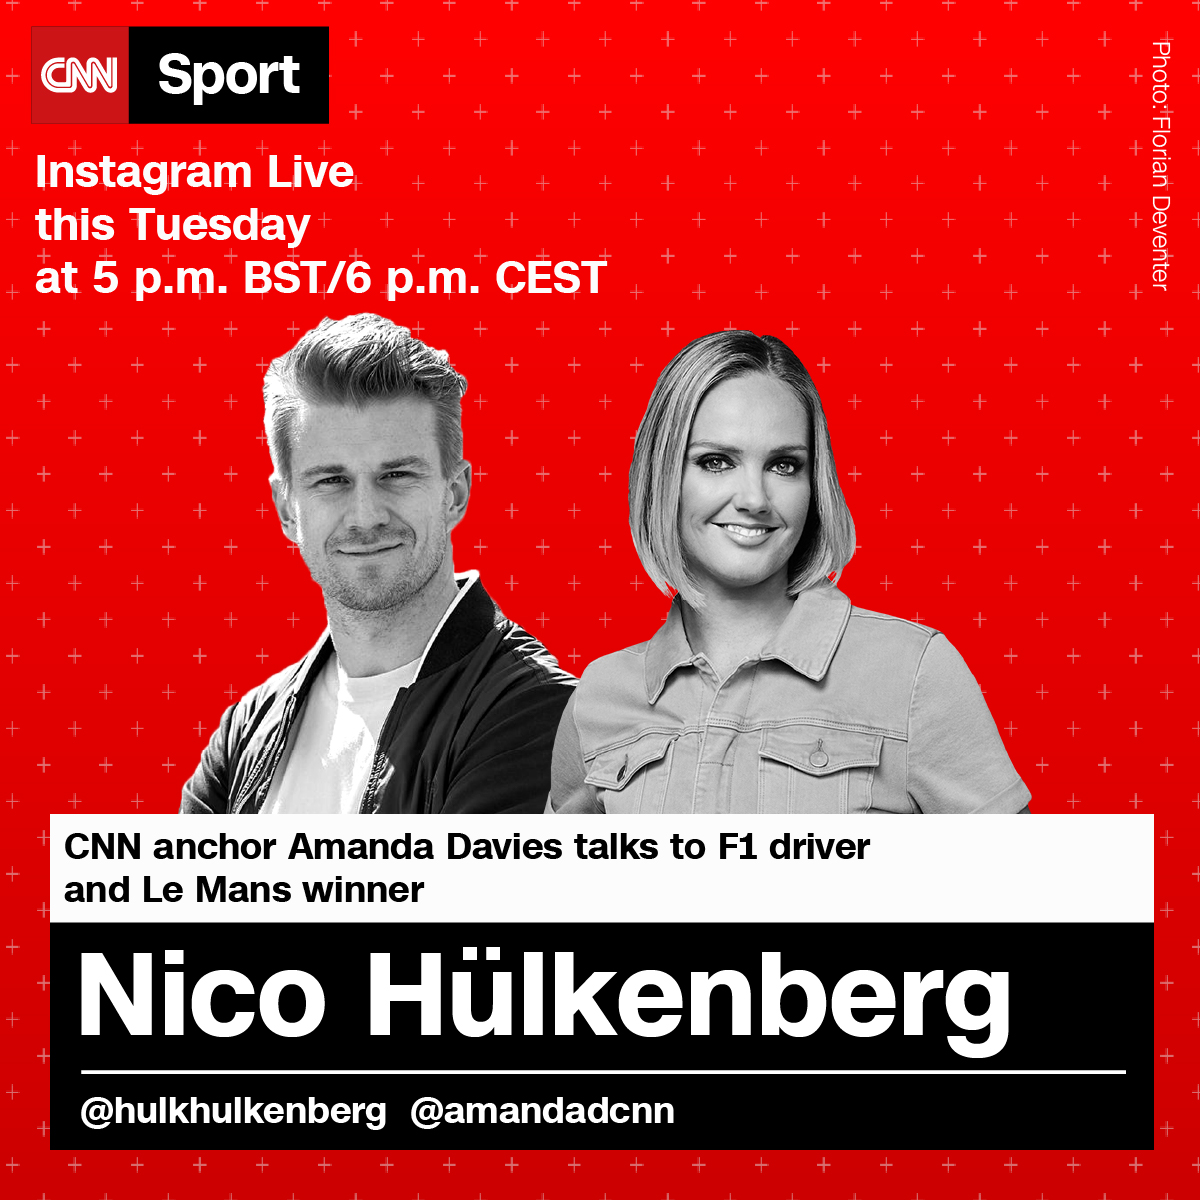 We're live with @HulkHulkenberg in less than an hour!   Don't forget to tune in at: https://t.co/Ab2XIG9yyy https://t.co/03I7pf2yuX